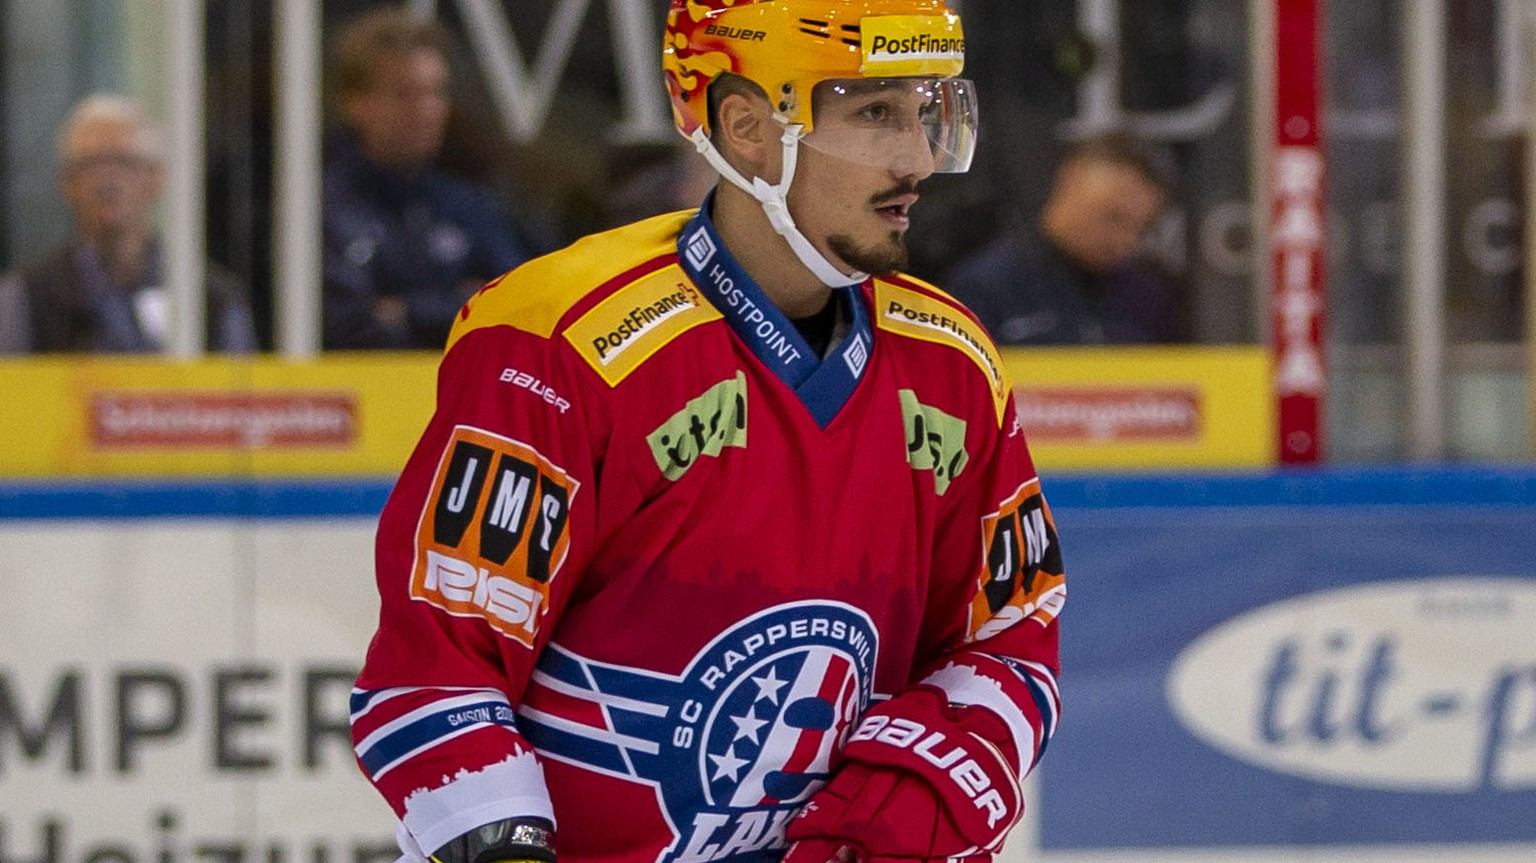 SC Rapperswil-Jona Lakers Verteidiger Jorden Gaehler waehrend dem Eishockey-Meisterschaftsspiel der National League zwischen den SC Rapperswil-Jona Lakers und den ZSC Lions am Samstag, 22. September 2018, in Rapperswil. (PPR/Patrick B. Kraemer)